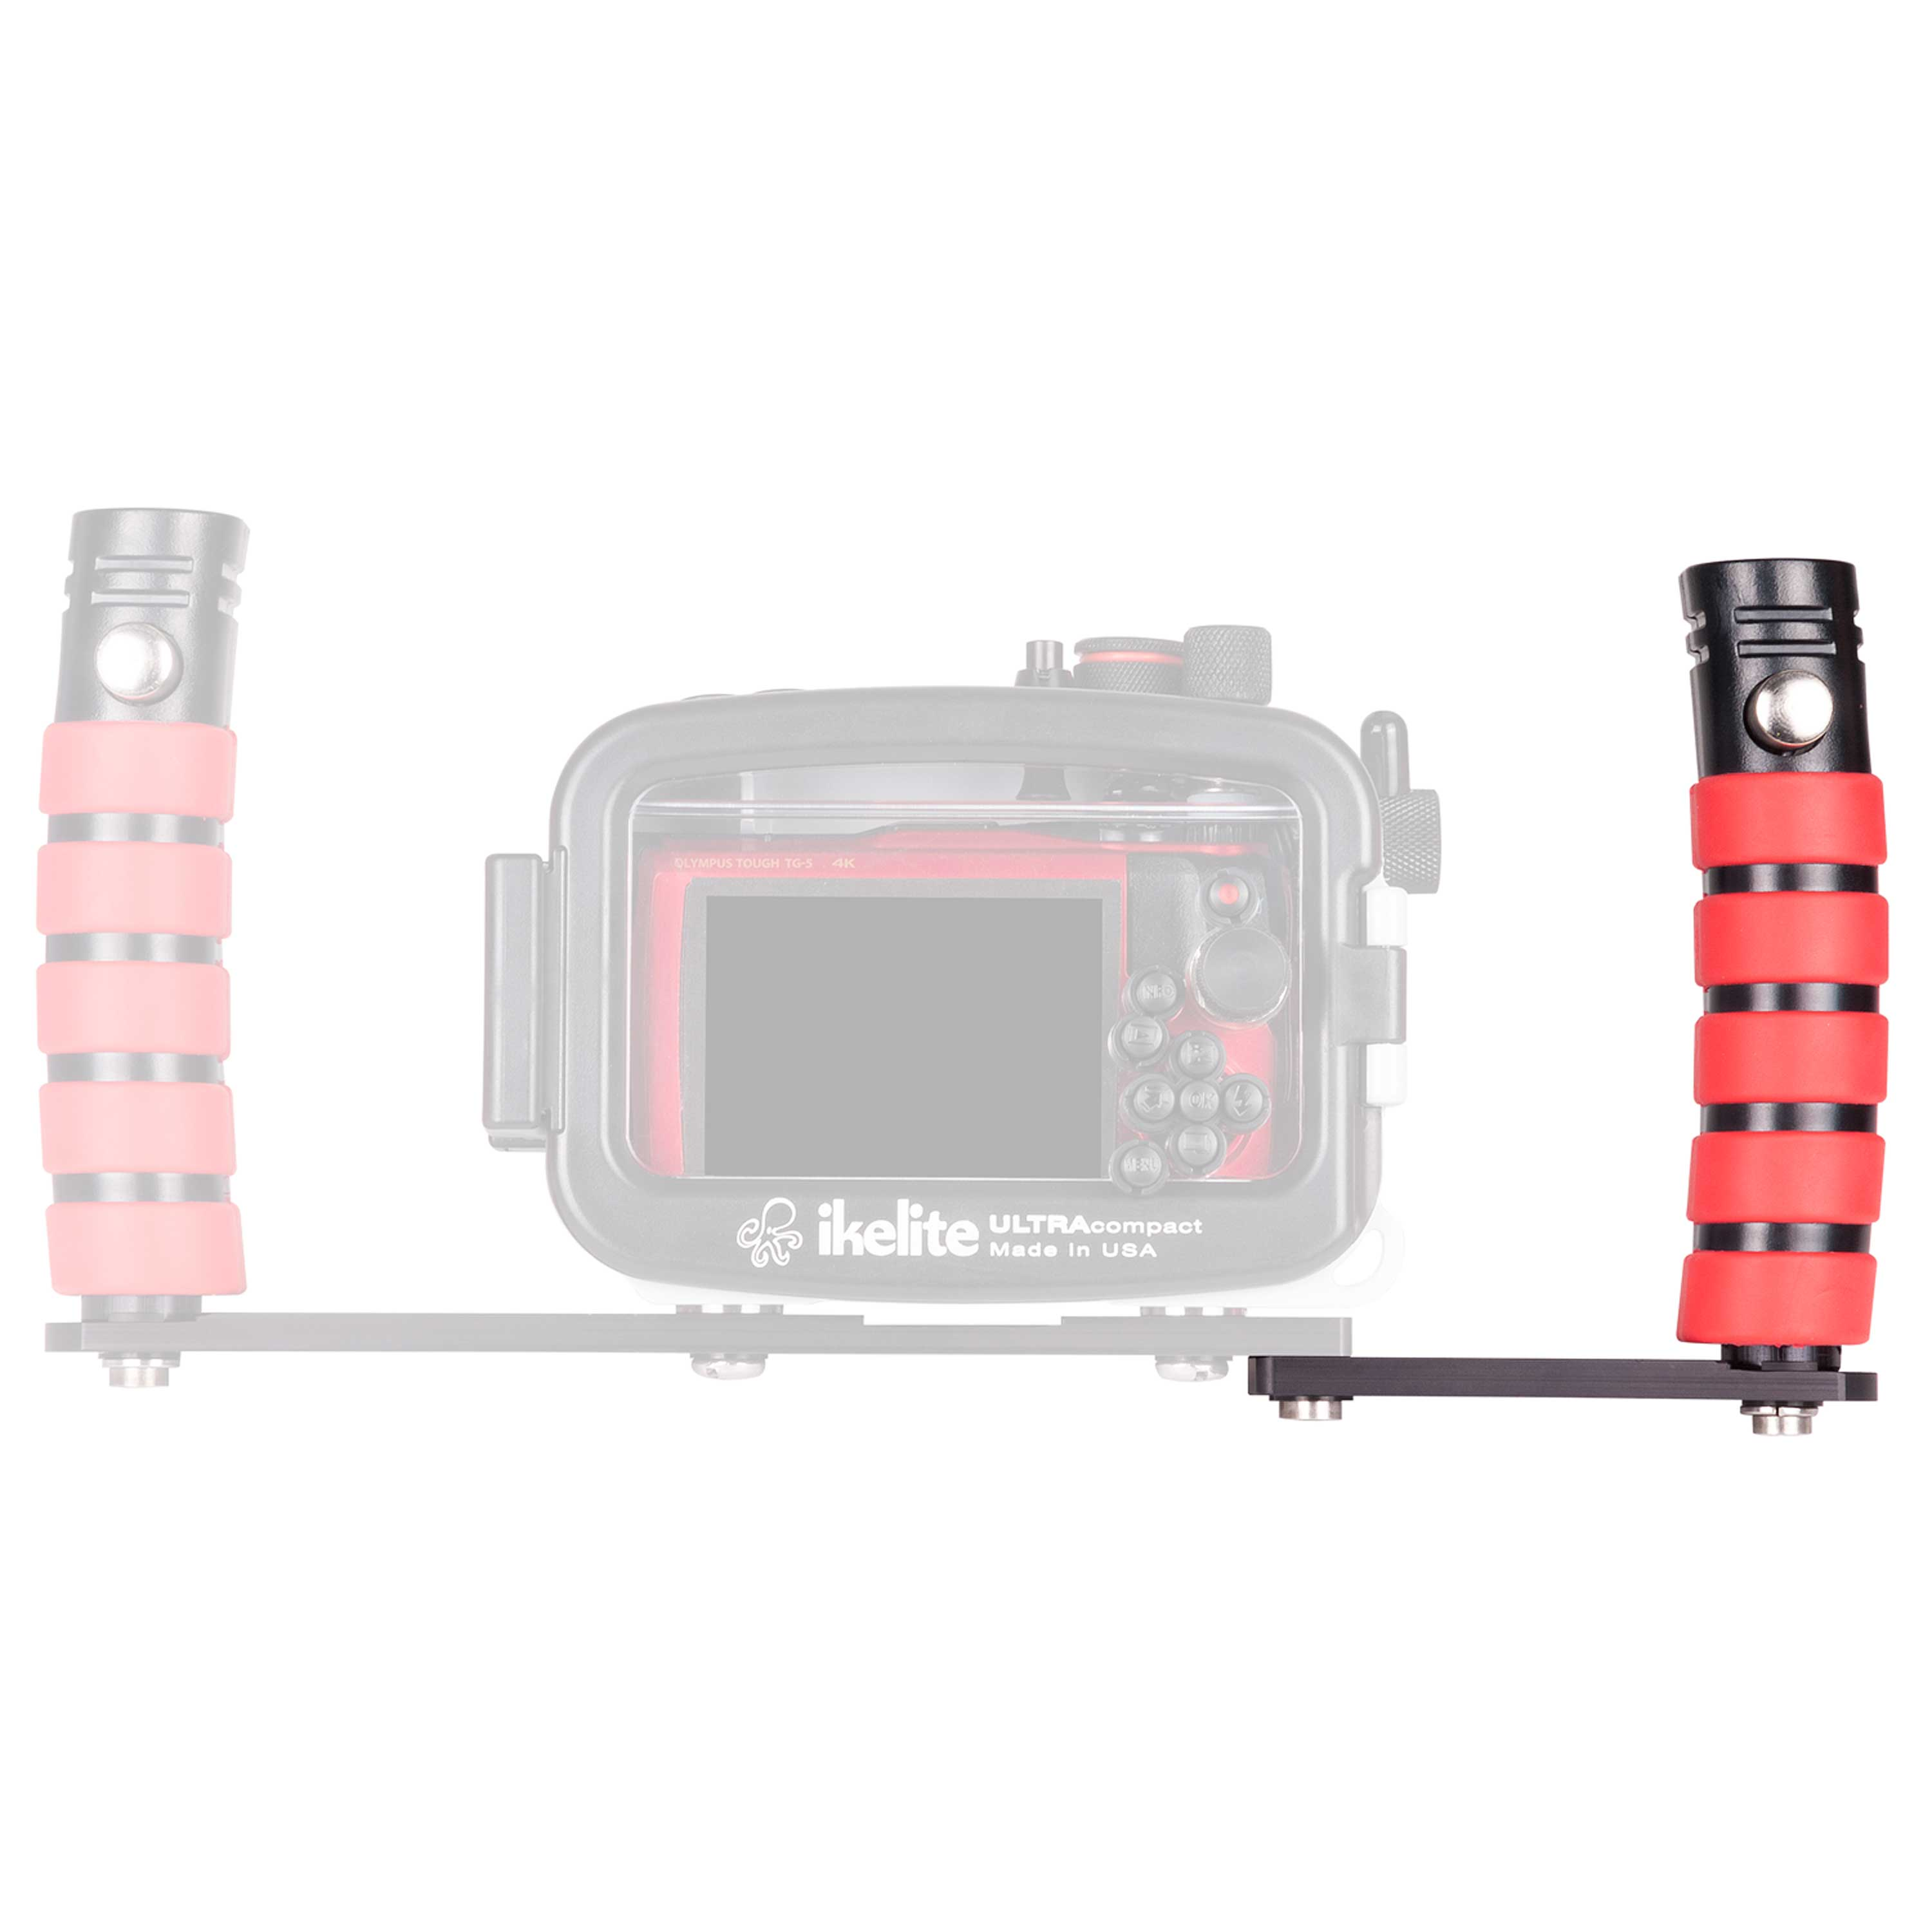 Ikelite Action Tray II Extension with Right Handle for Compact Housings - Underwater - Ikelite - Helix Camera